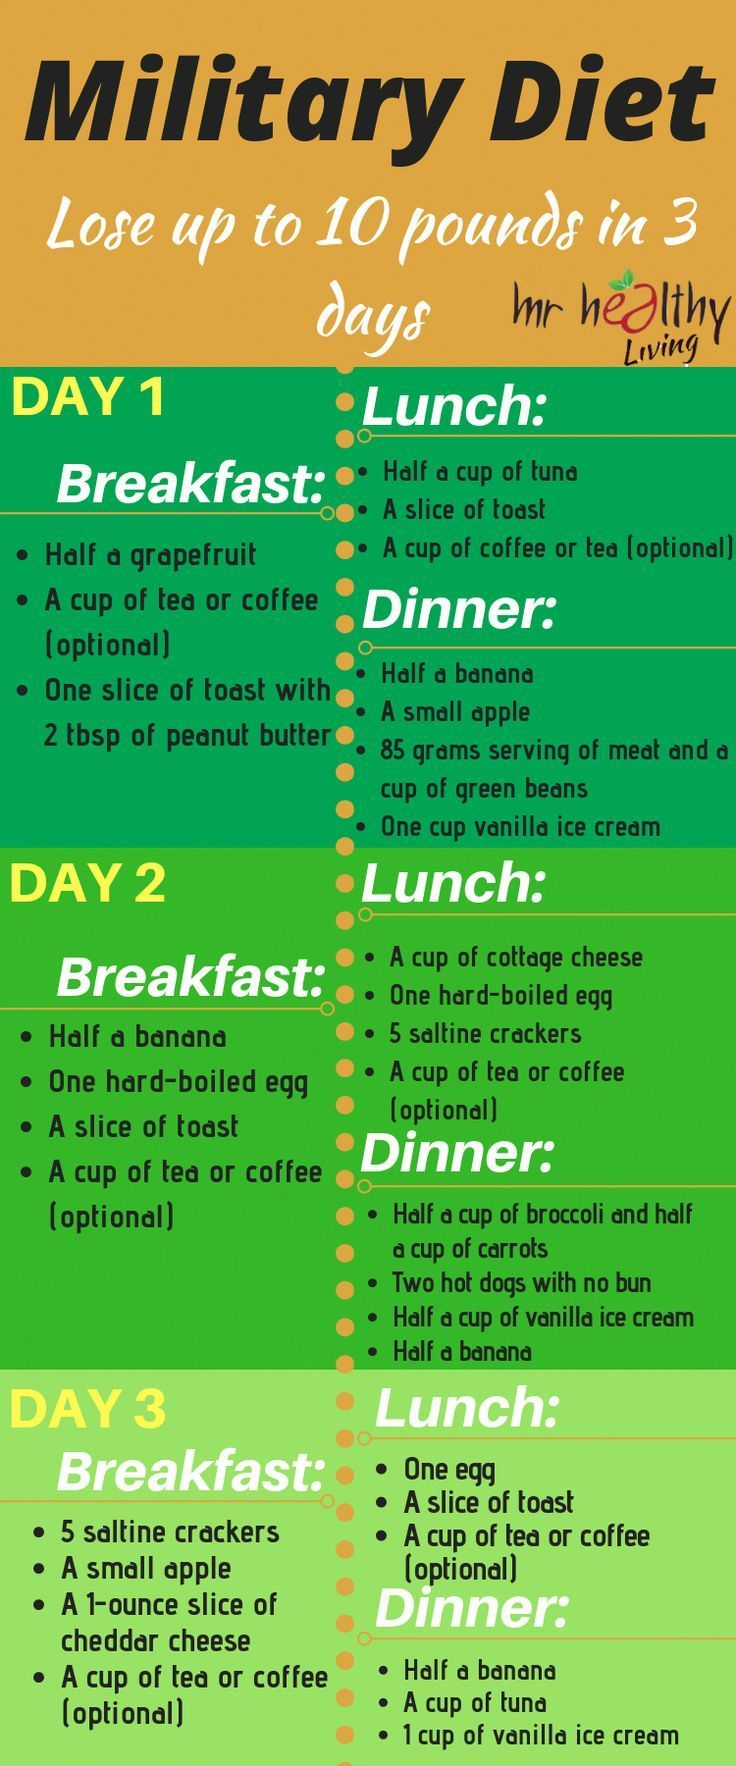 7 military diet Before And After ideas